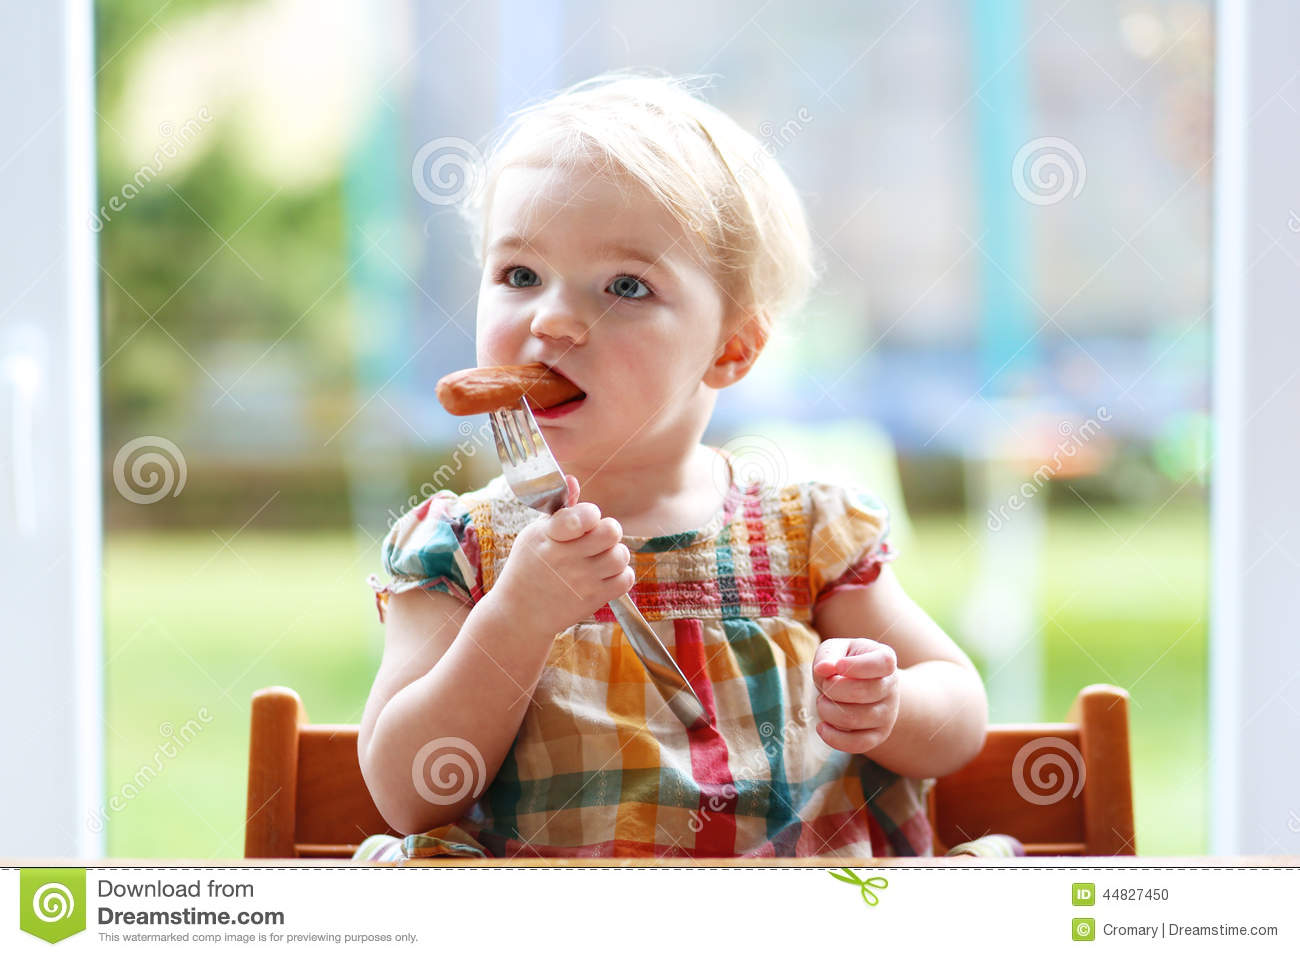 baby high chair for eating swivel vanity cheap cute girl sausage from fork stock photo - image: 44827450